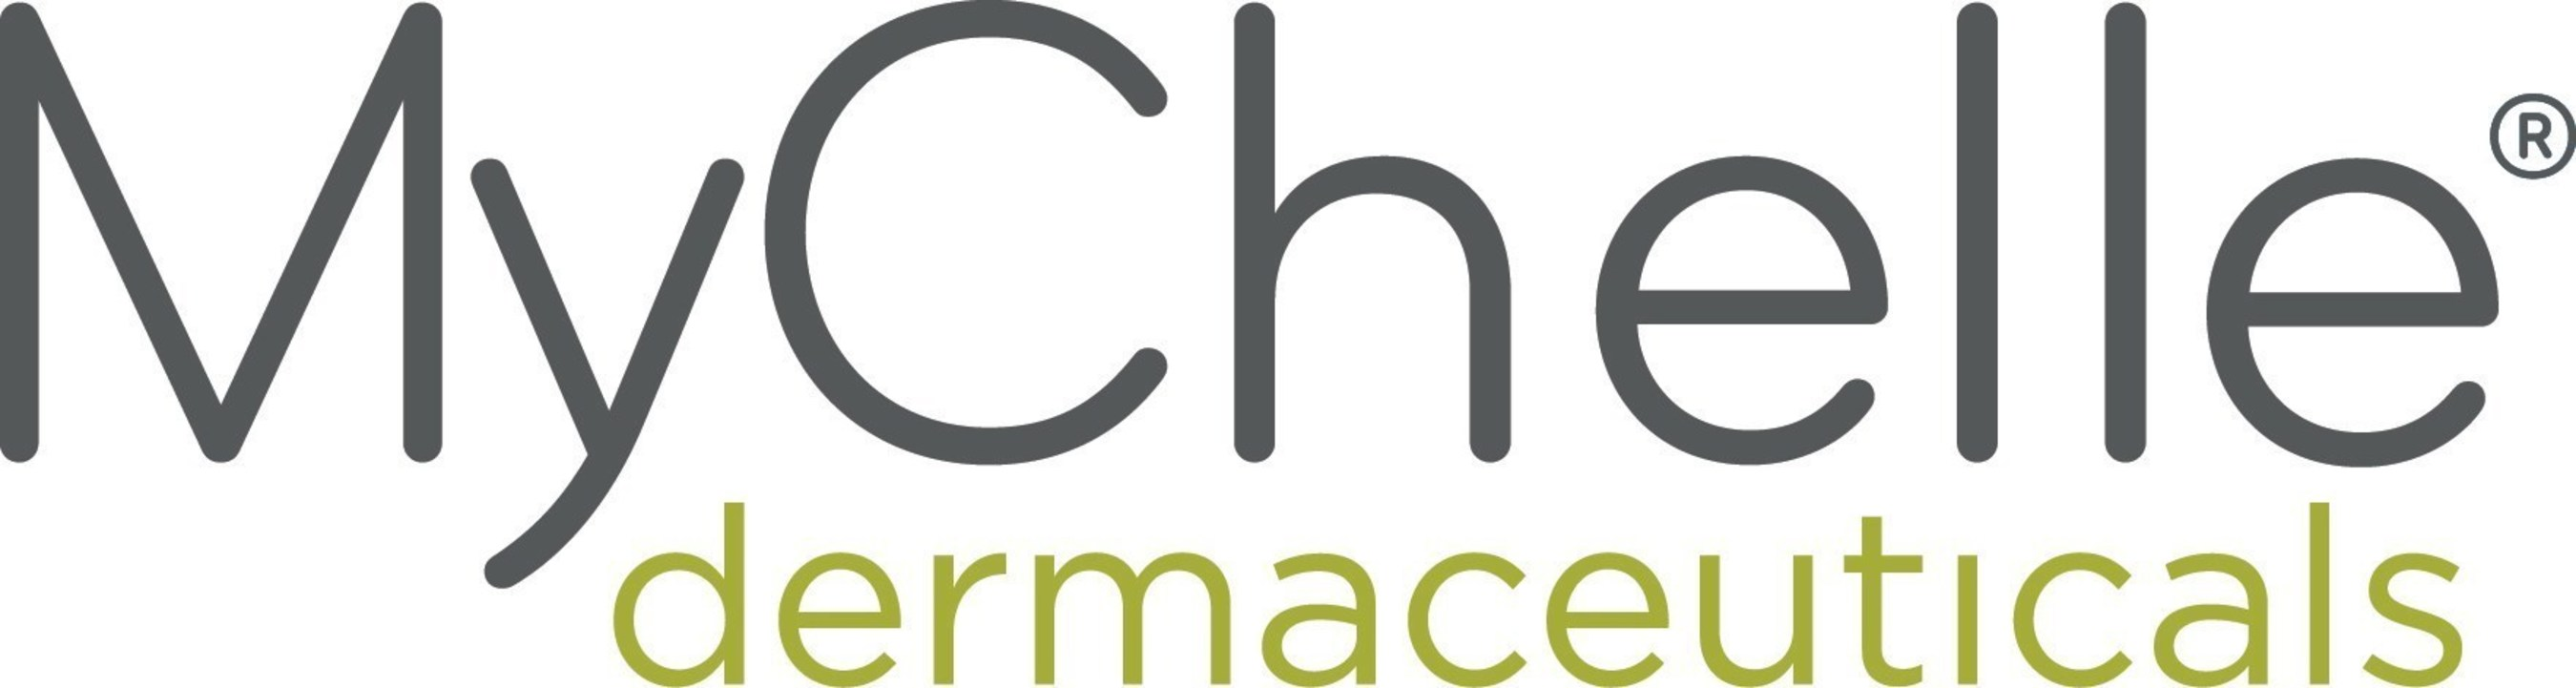 Founded in 2000, the Colorado-based skin care company is credited as the first to successfully develop and market natural skin care products using a combination of anti-aging peptides, plant stem cells, and clinically proven dermatological ingredients. Learn more at www.mychelle.com